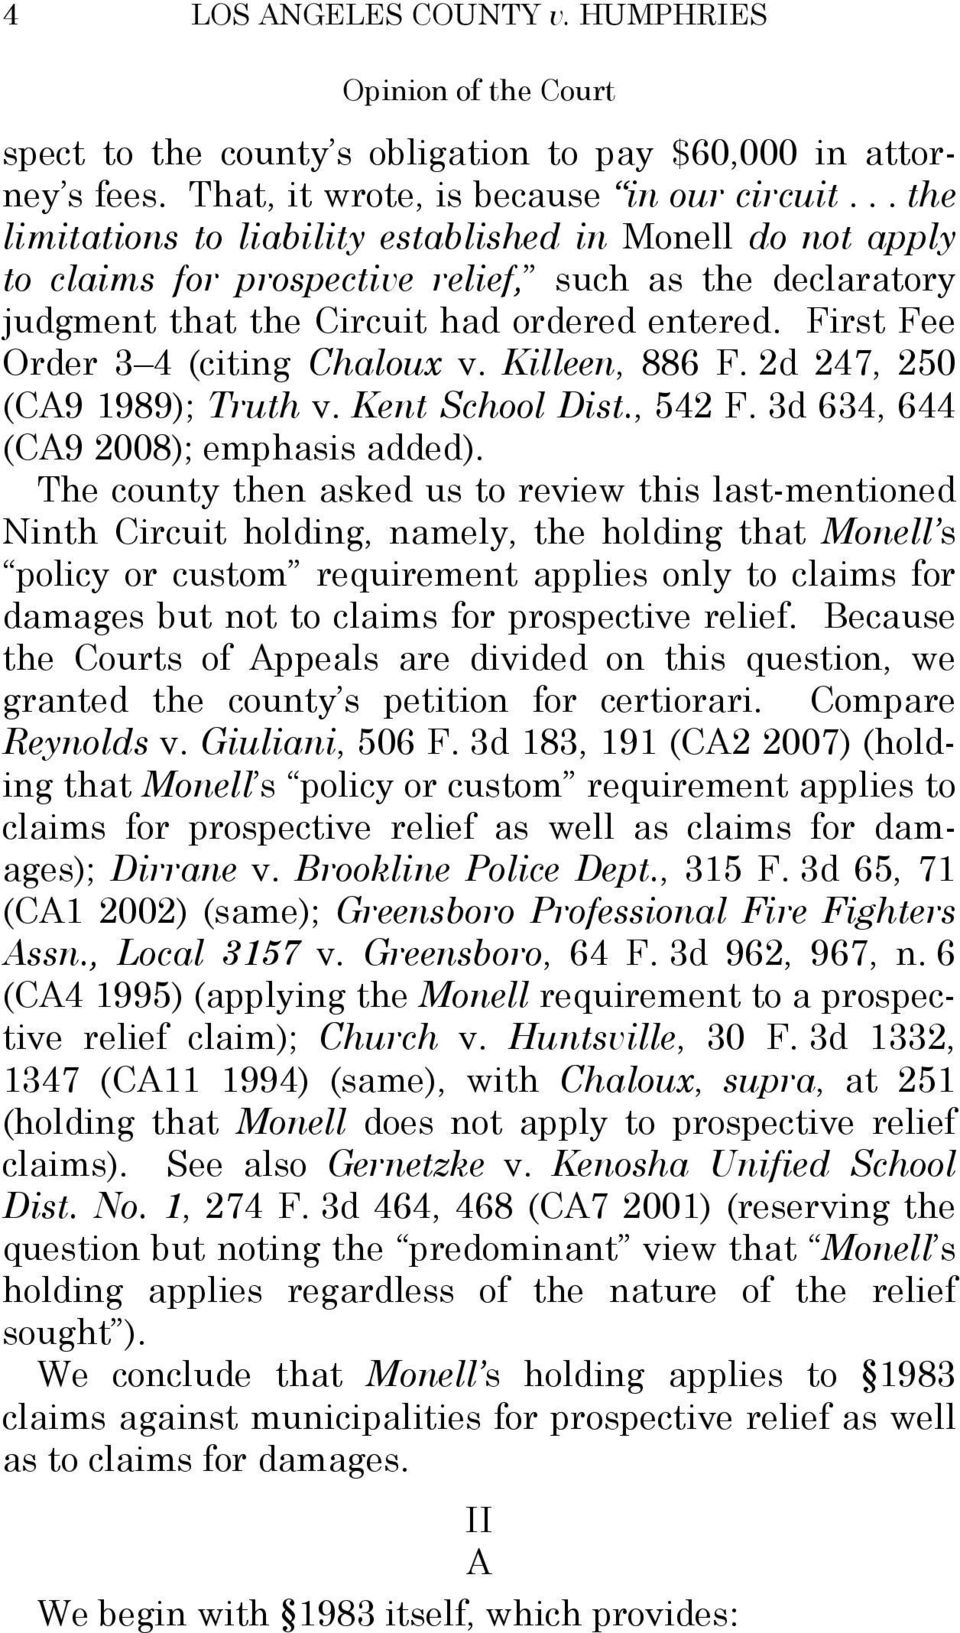 First Fee Order 3 4 (citing Chaloux v. Killeen, 886 F. 2d 247, 250 (CA9 1989); Truth v. Kent School Dist., 542 F. 3d 634, 644 (CA9 2008); emphasis added).